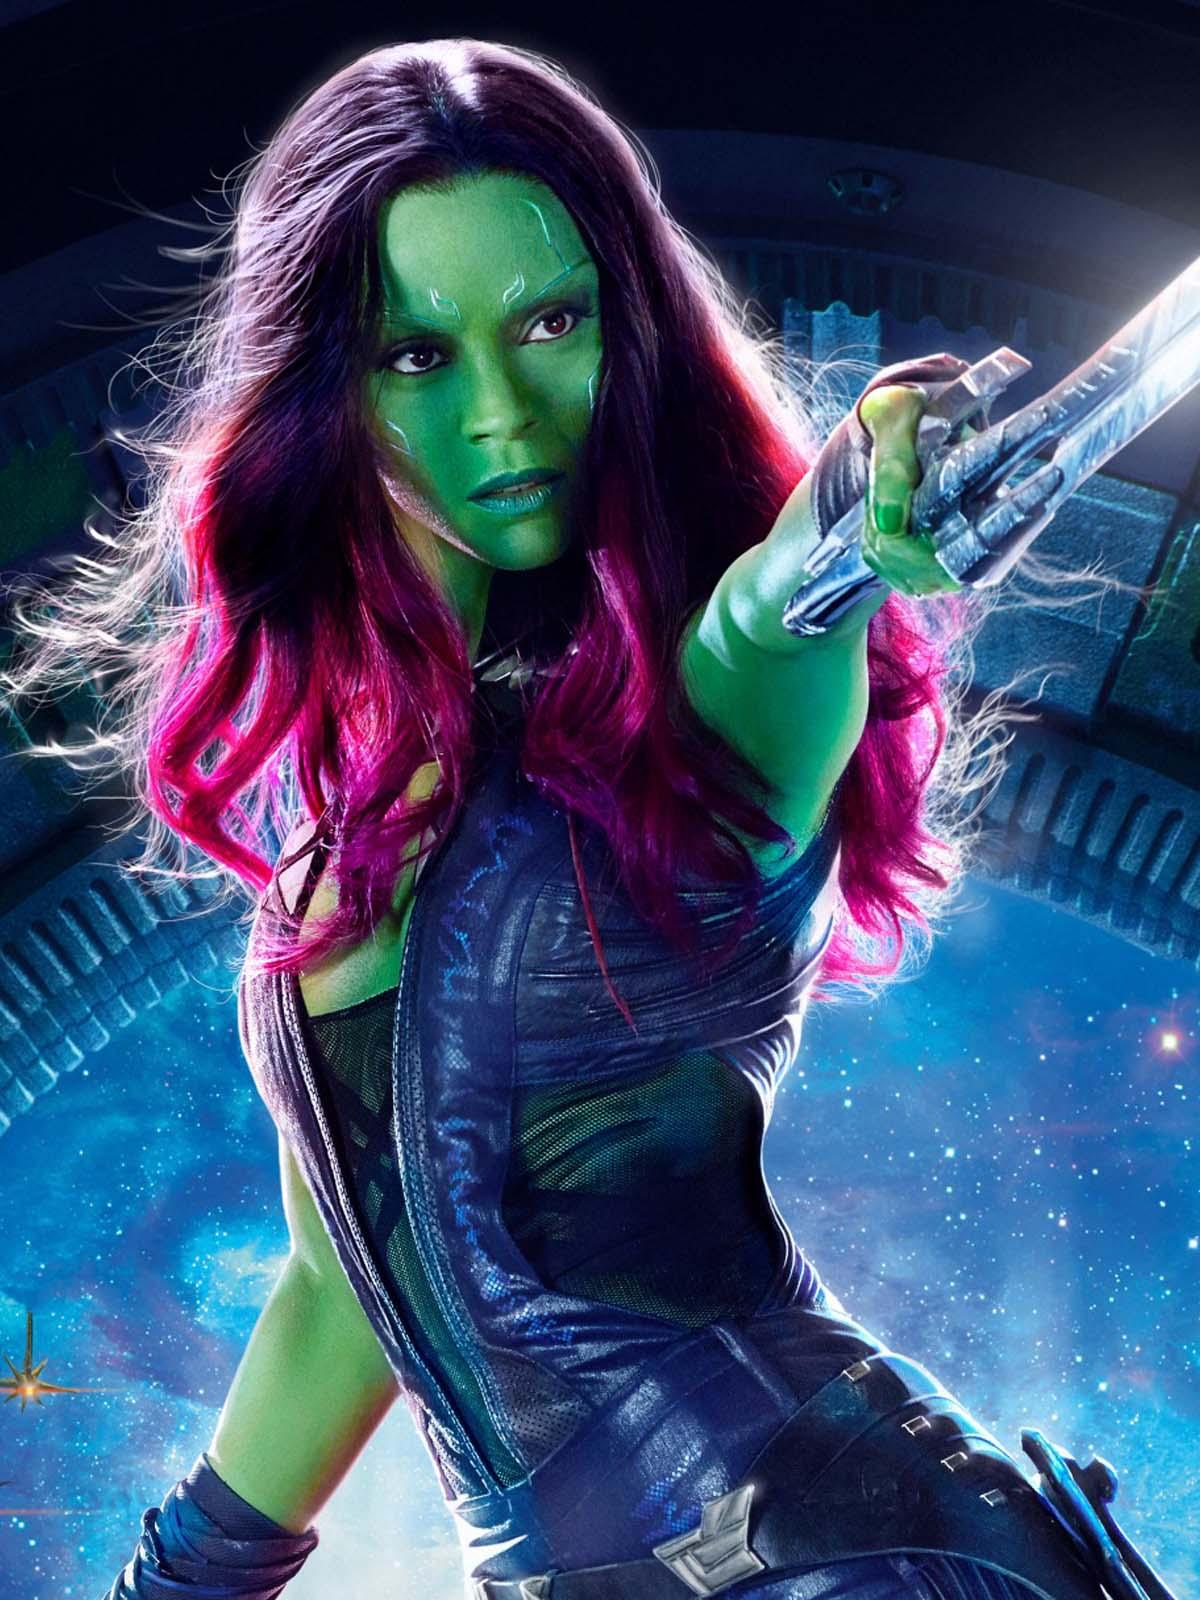 Gamora In Guardians Of The Galaxy Vol 2 Free 4k Ultra Hd Mobile